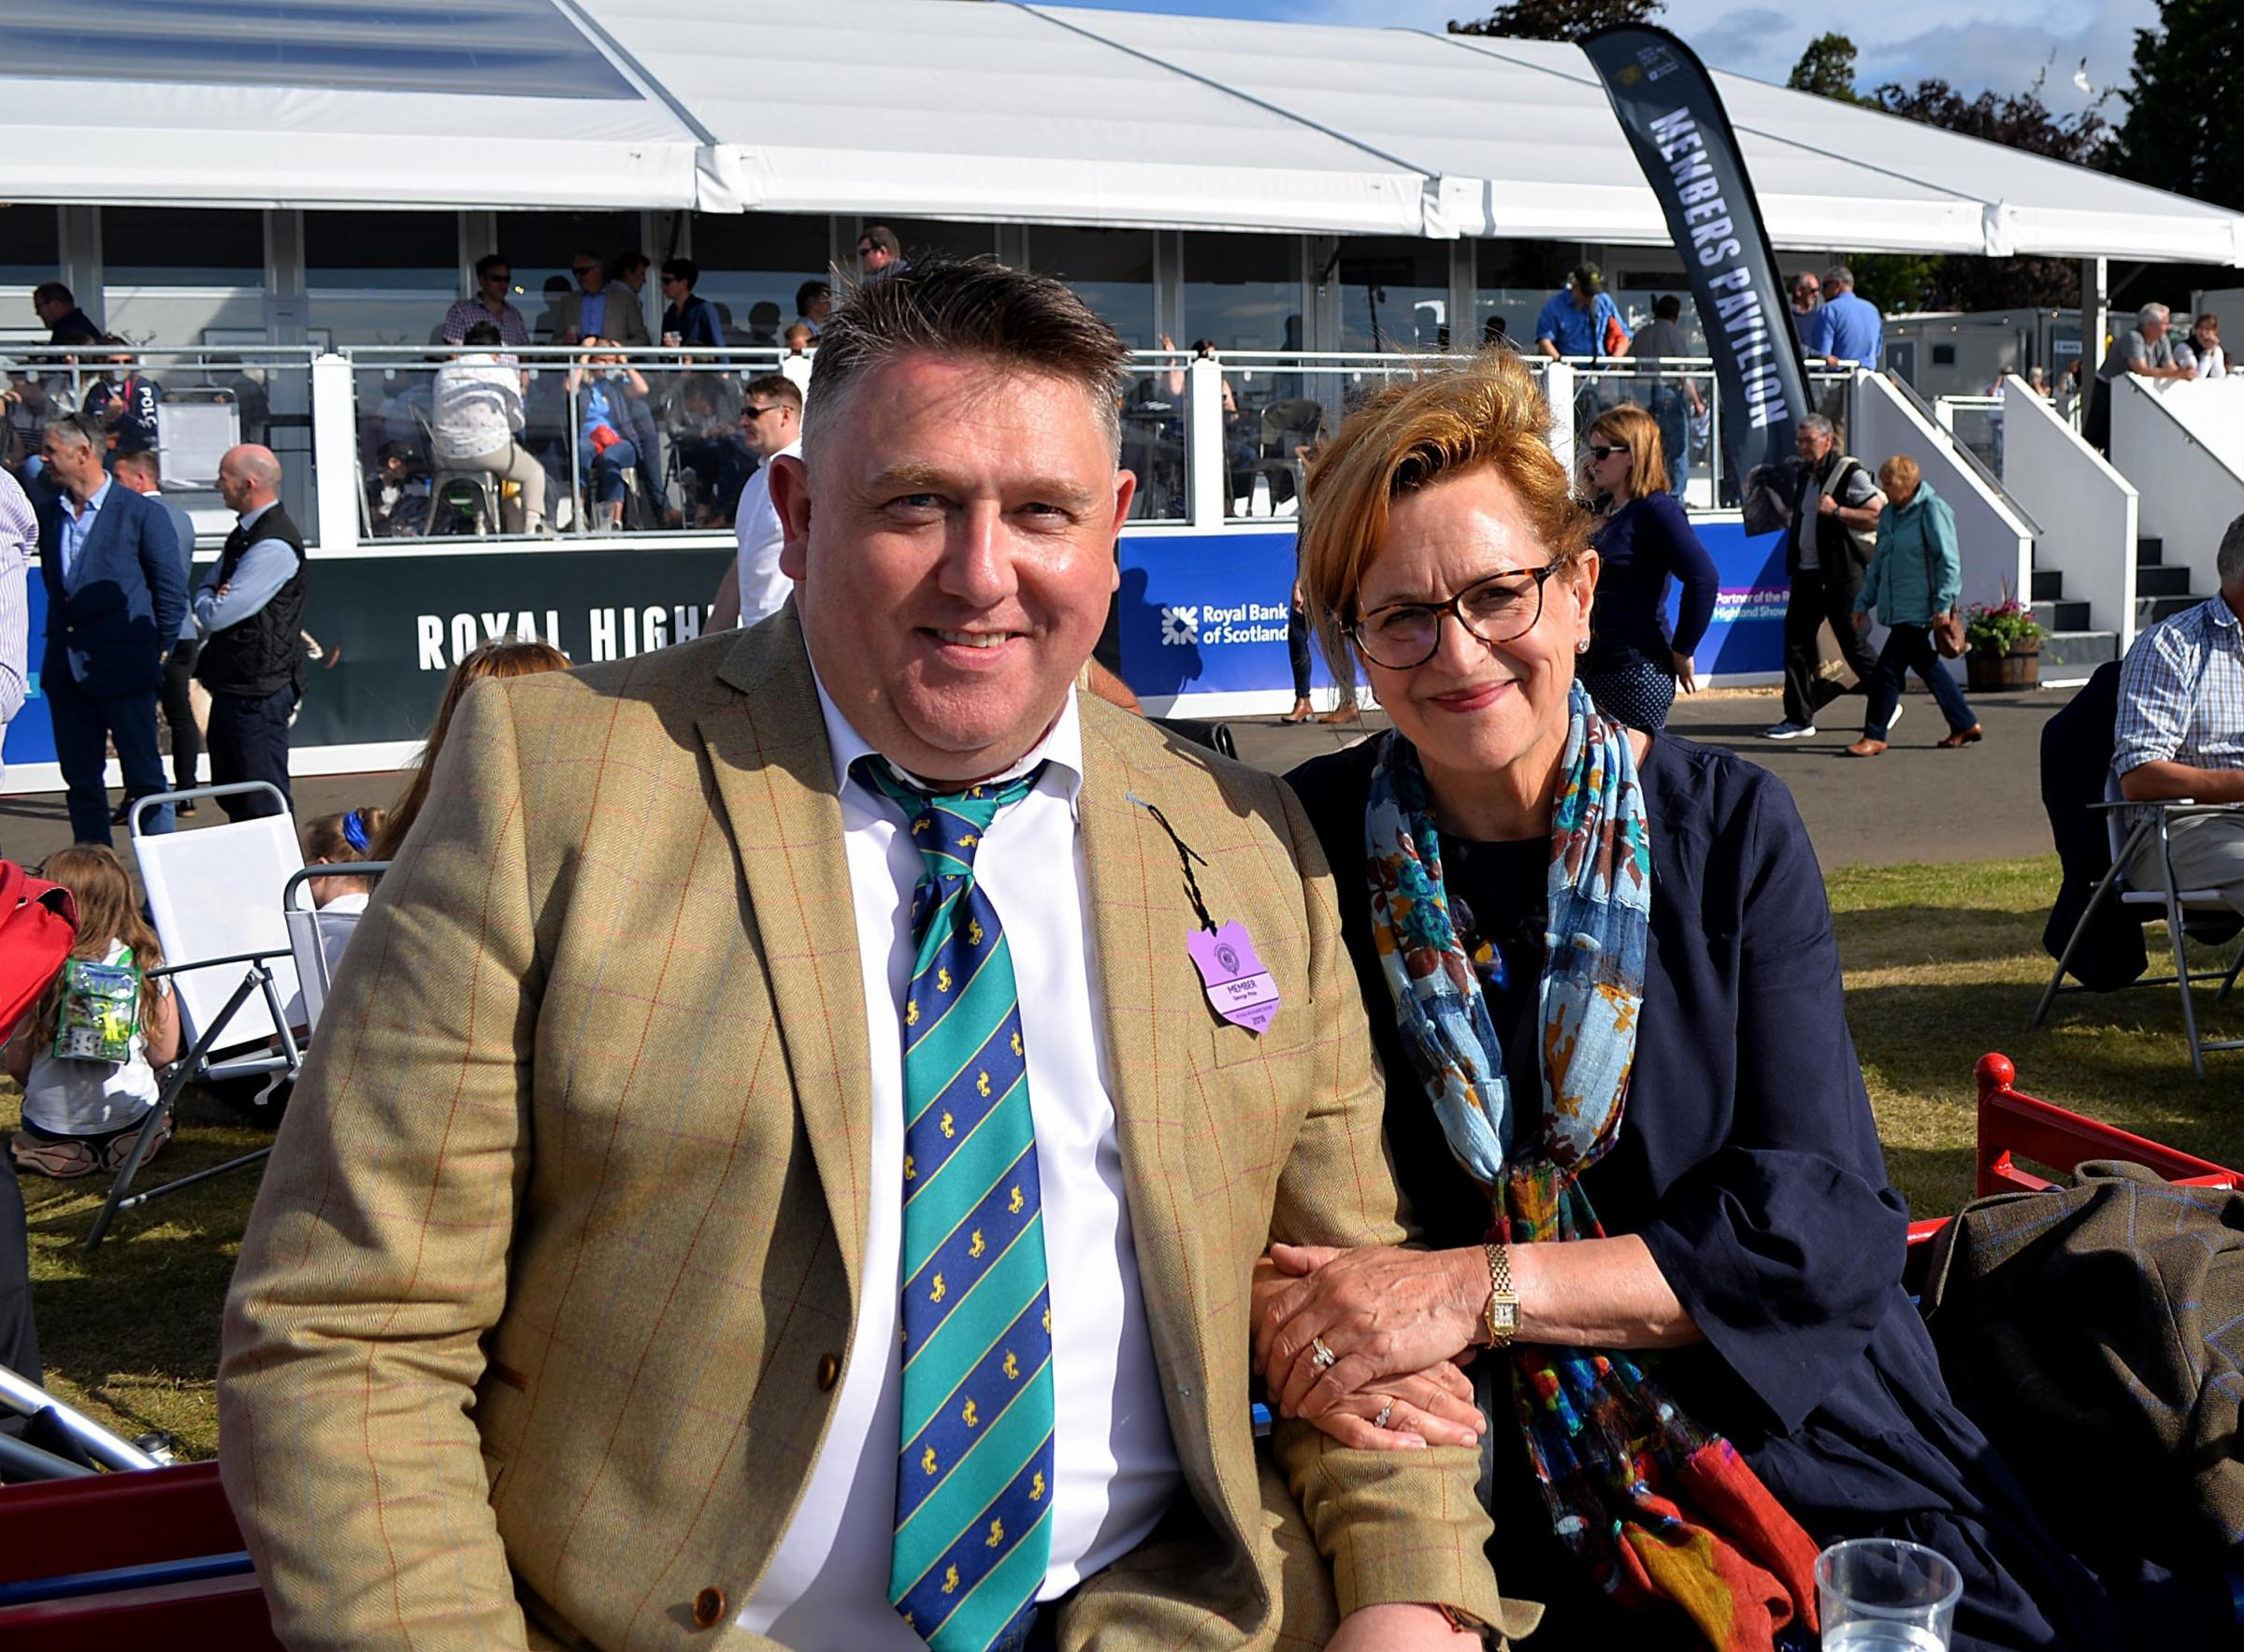 Barbara Dickson spent the day at the show with her friend George Pirie who showed her the highlights of the show on Friday